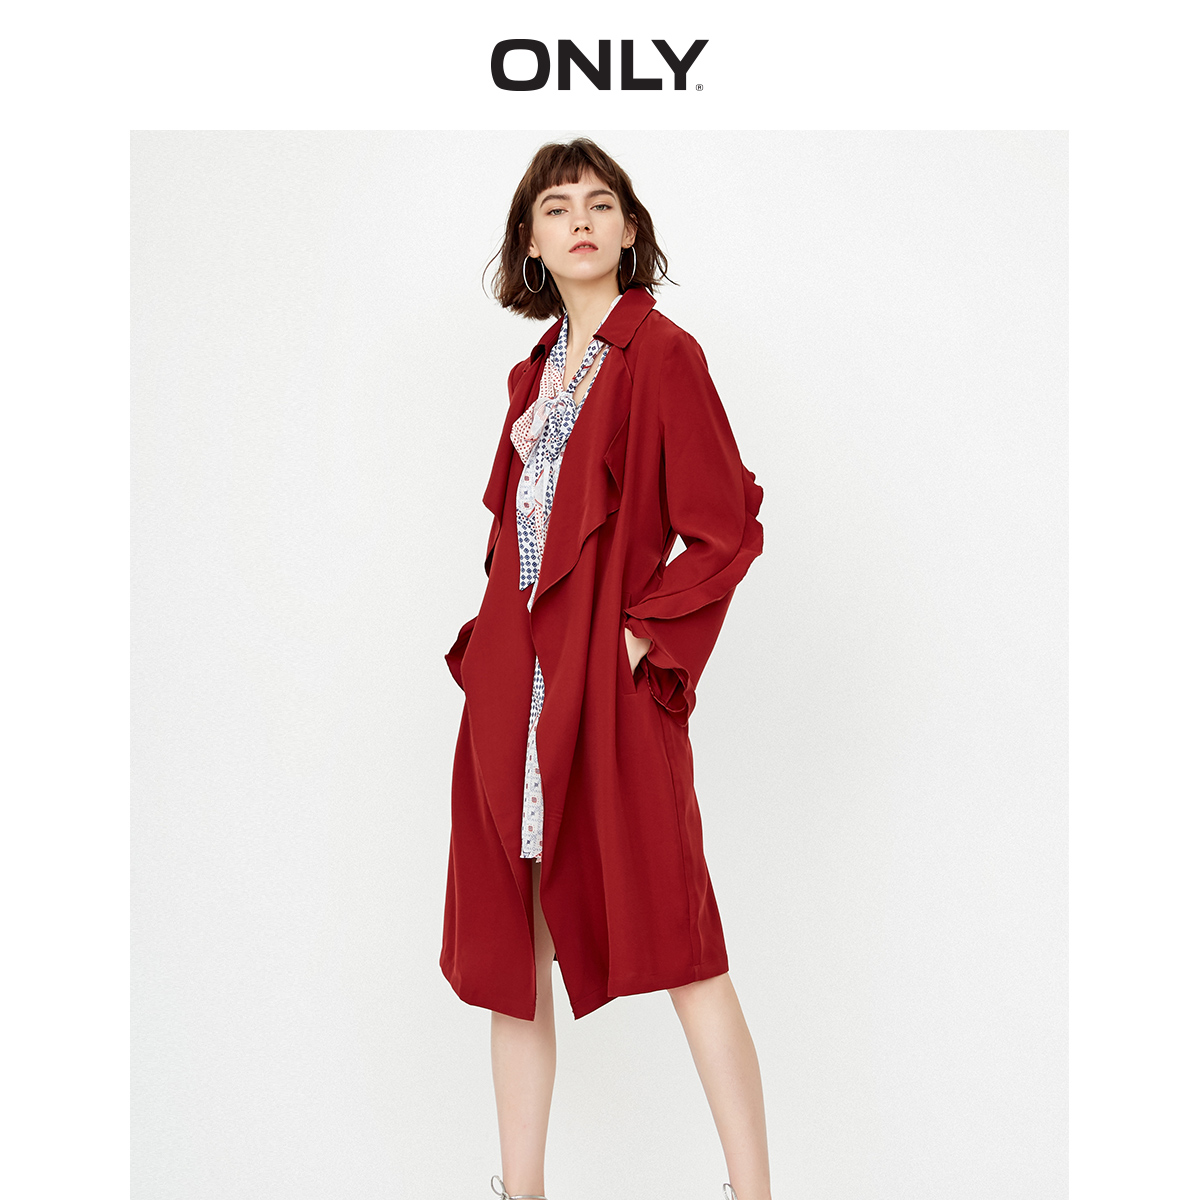 ONLY Women's Slim Fit Lace-up Ruffled Long Wind Coat   118336510